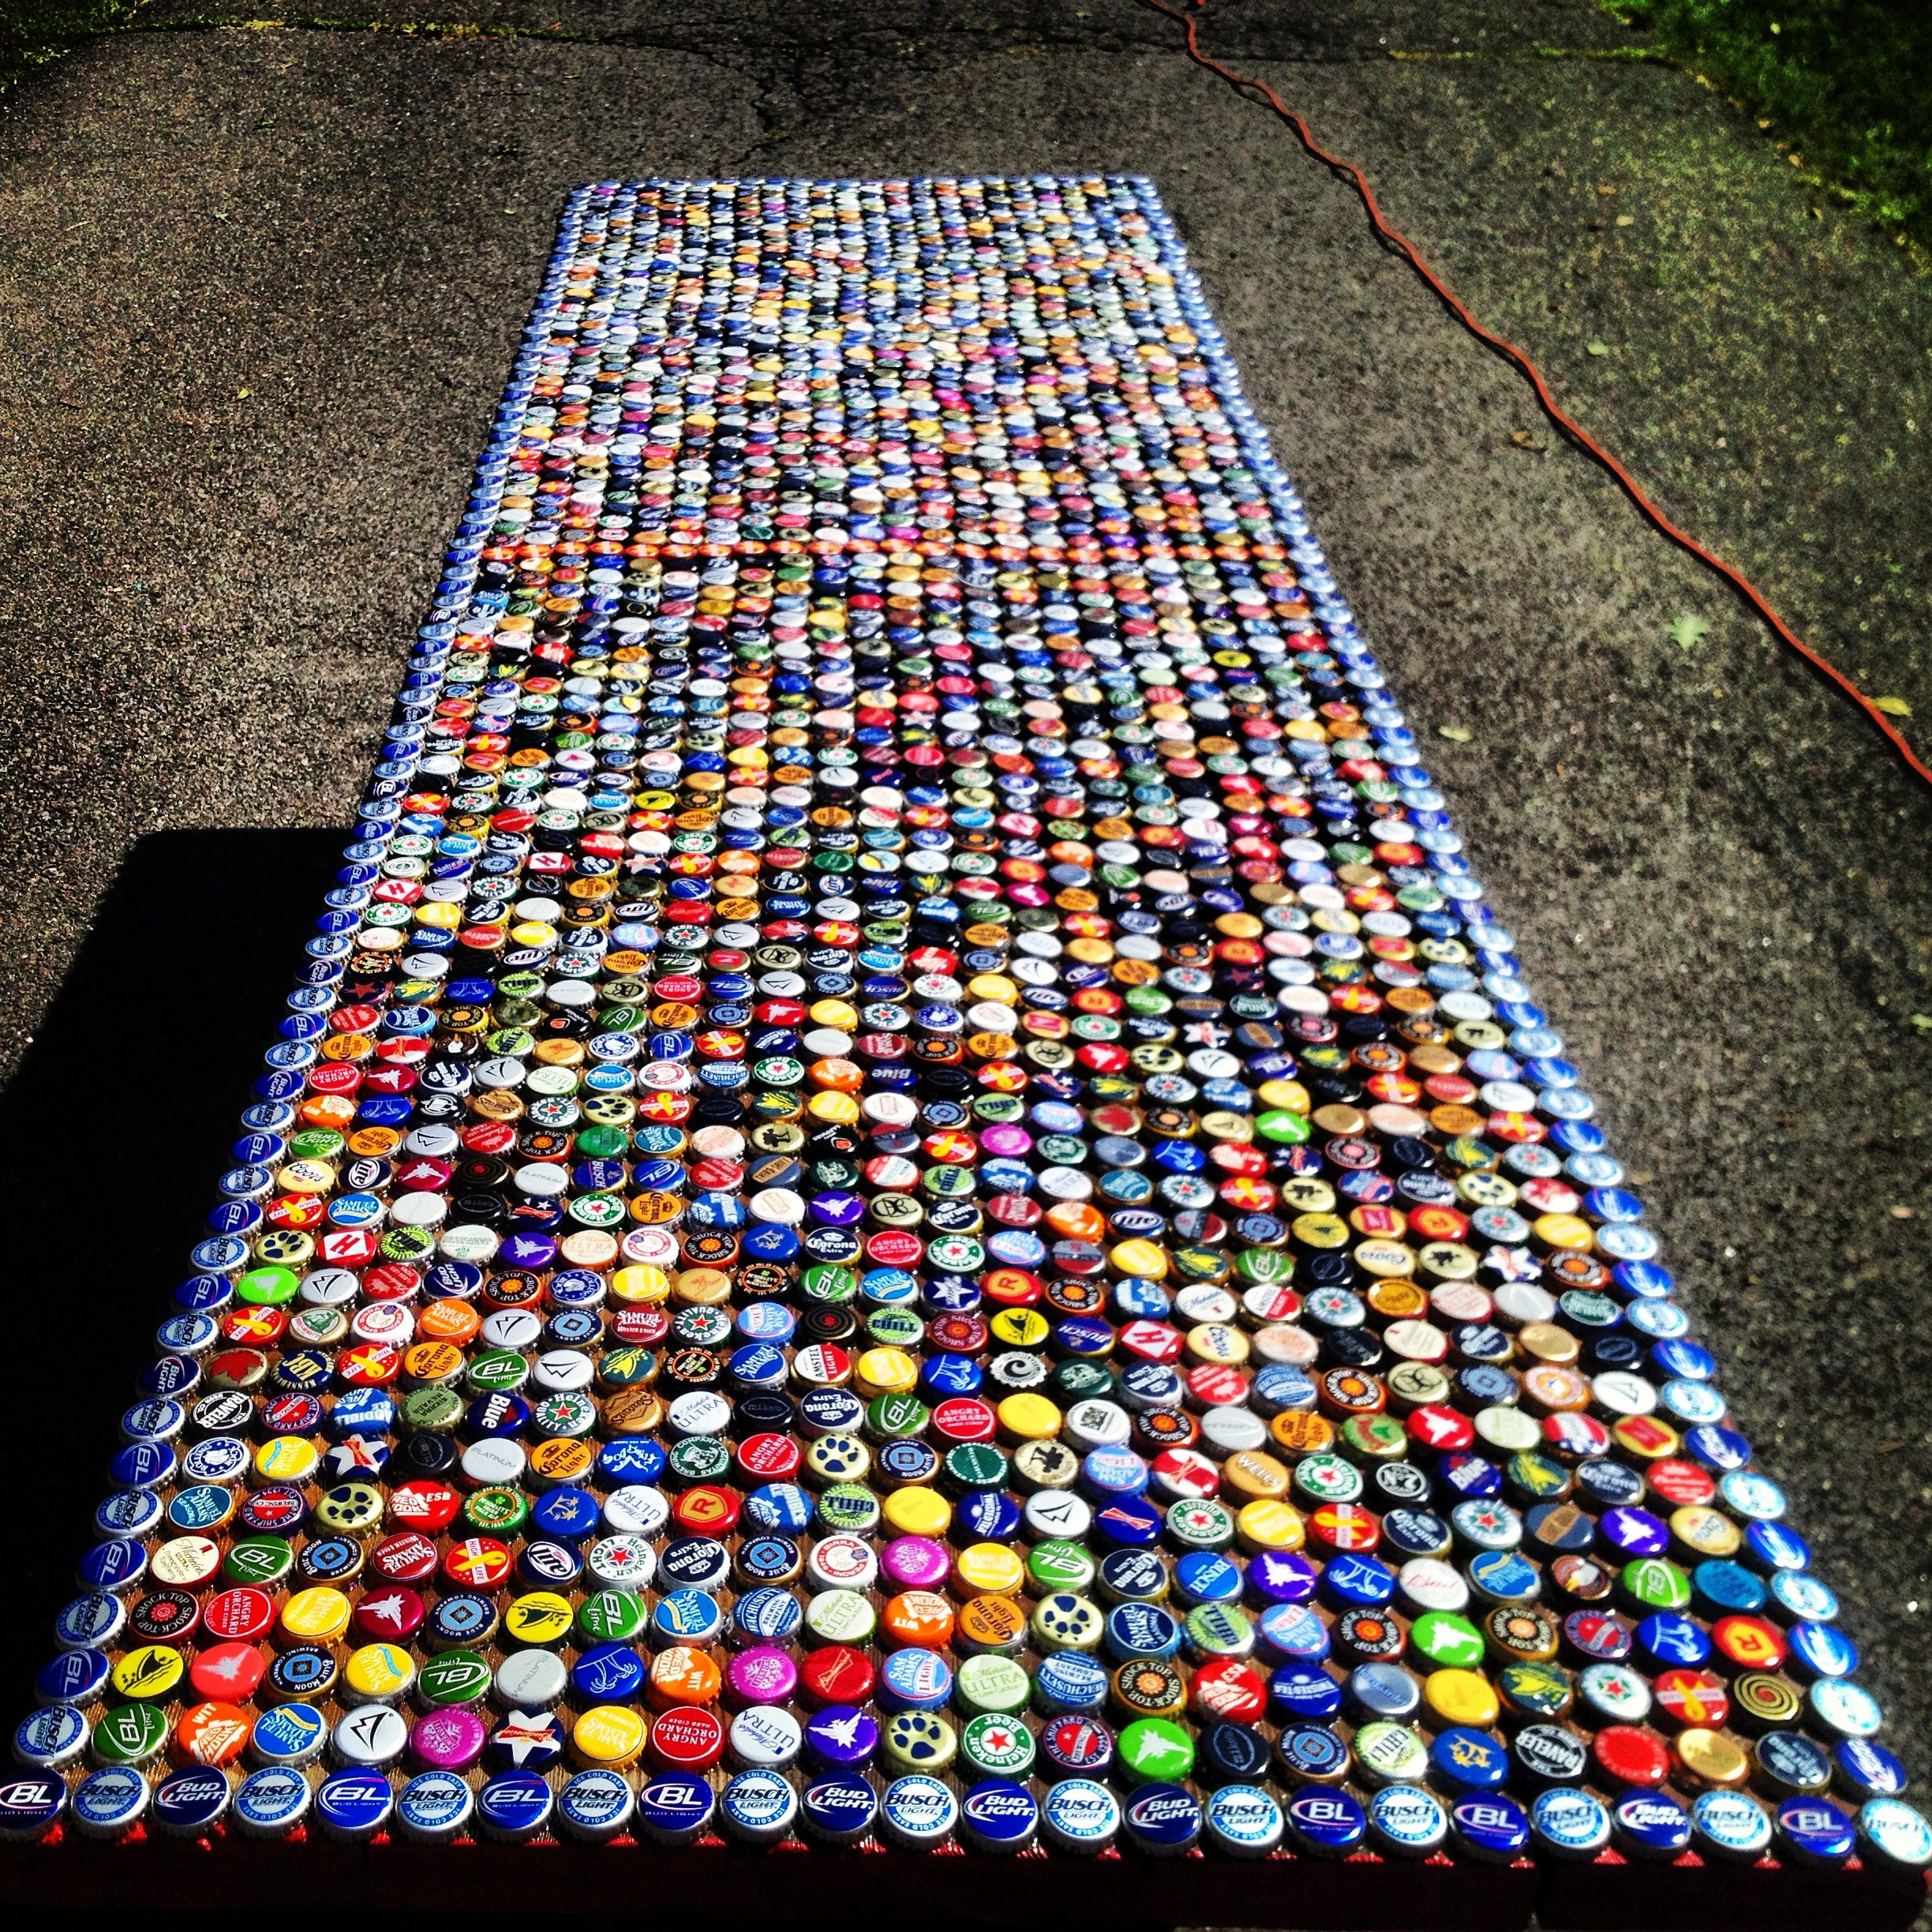 Beer bottle cap pong table creativity for Cool beer cap ideas